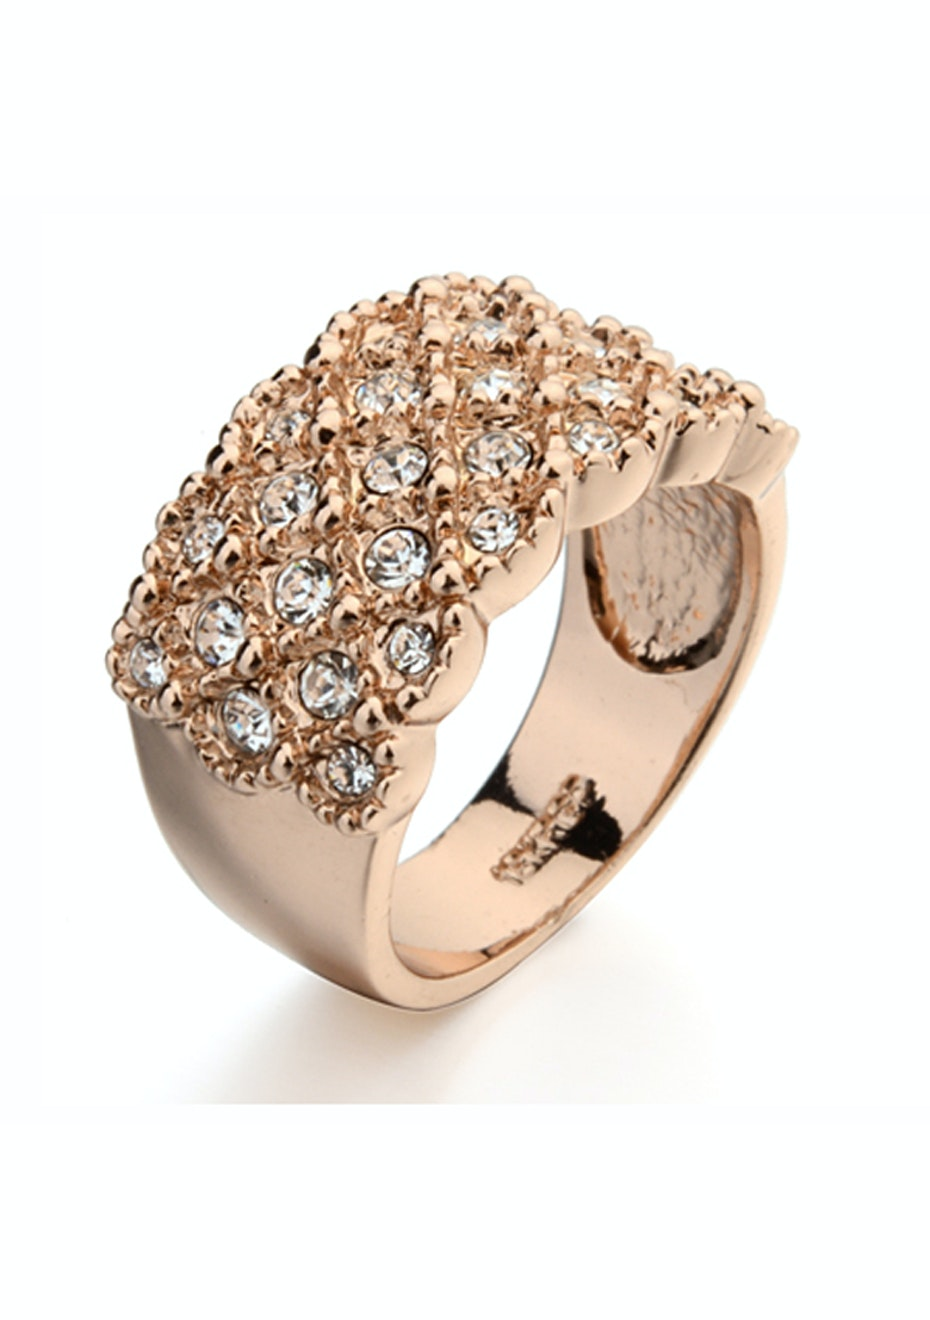 Chateau Ring Embellished with Crystals from Swarovski